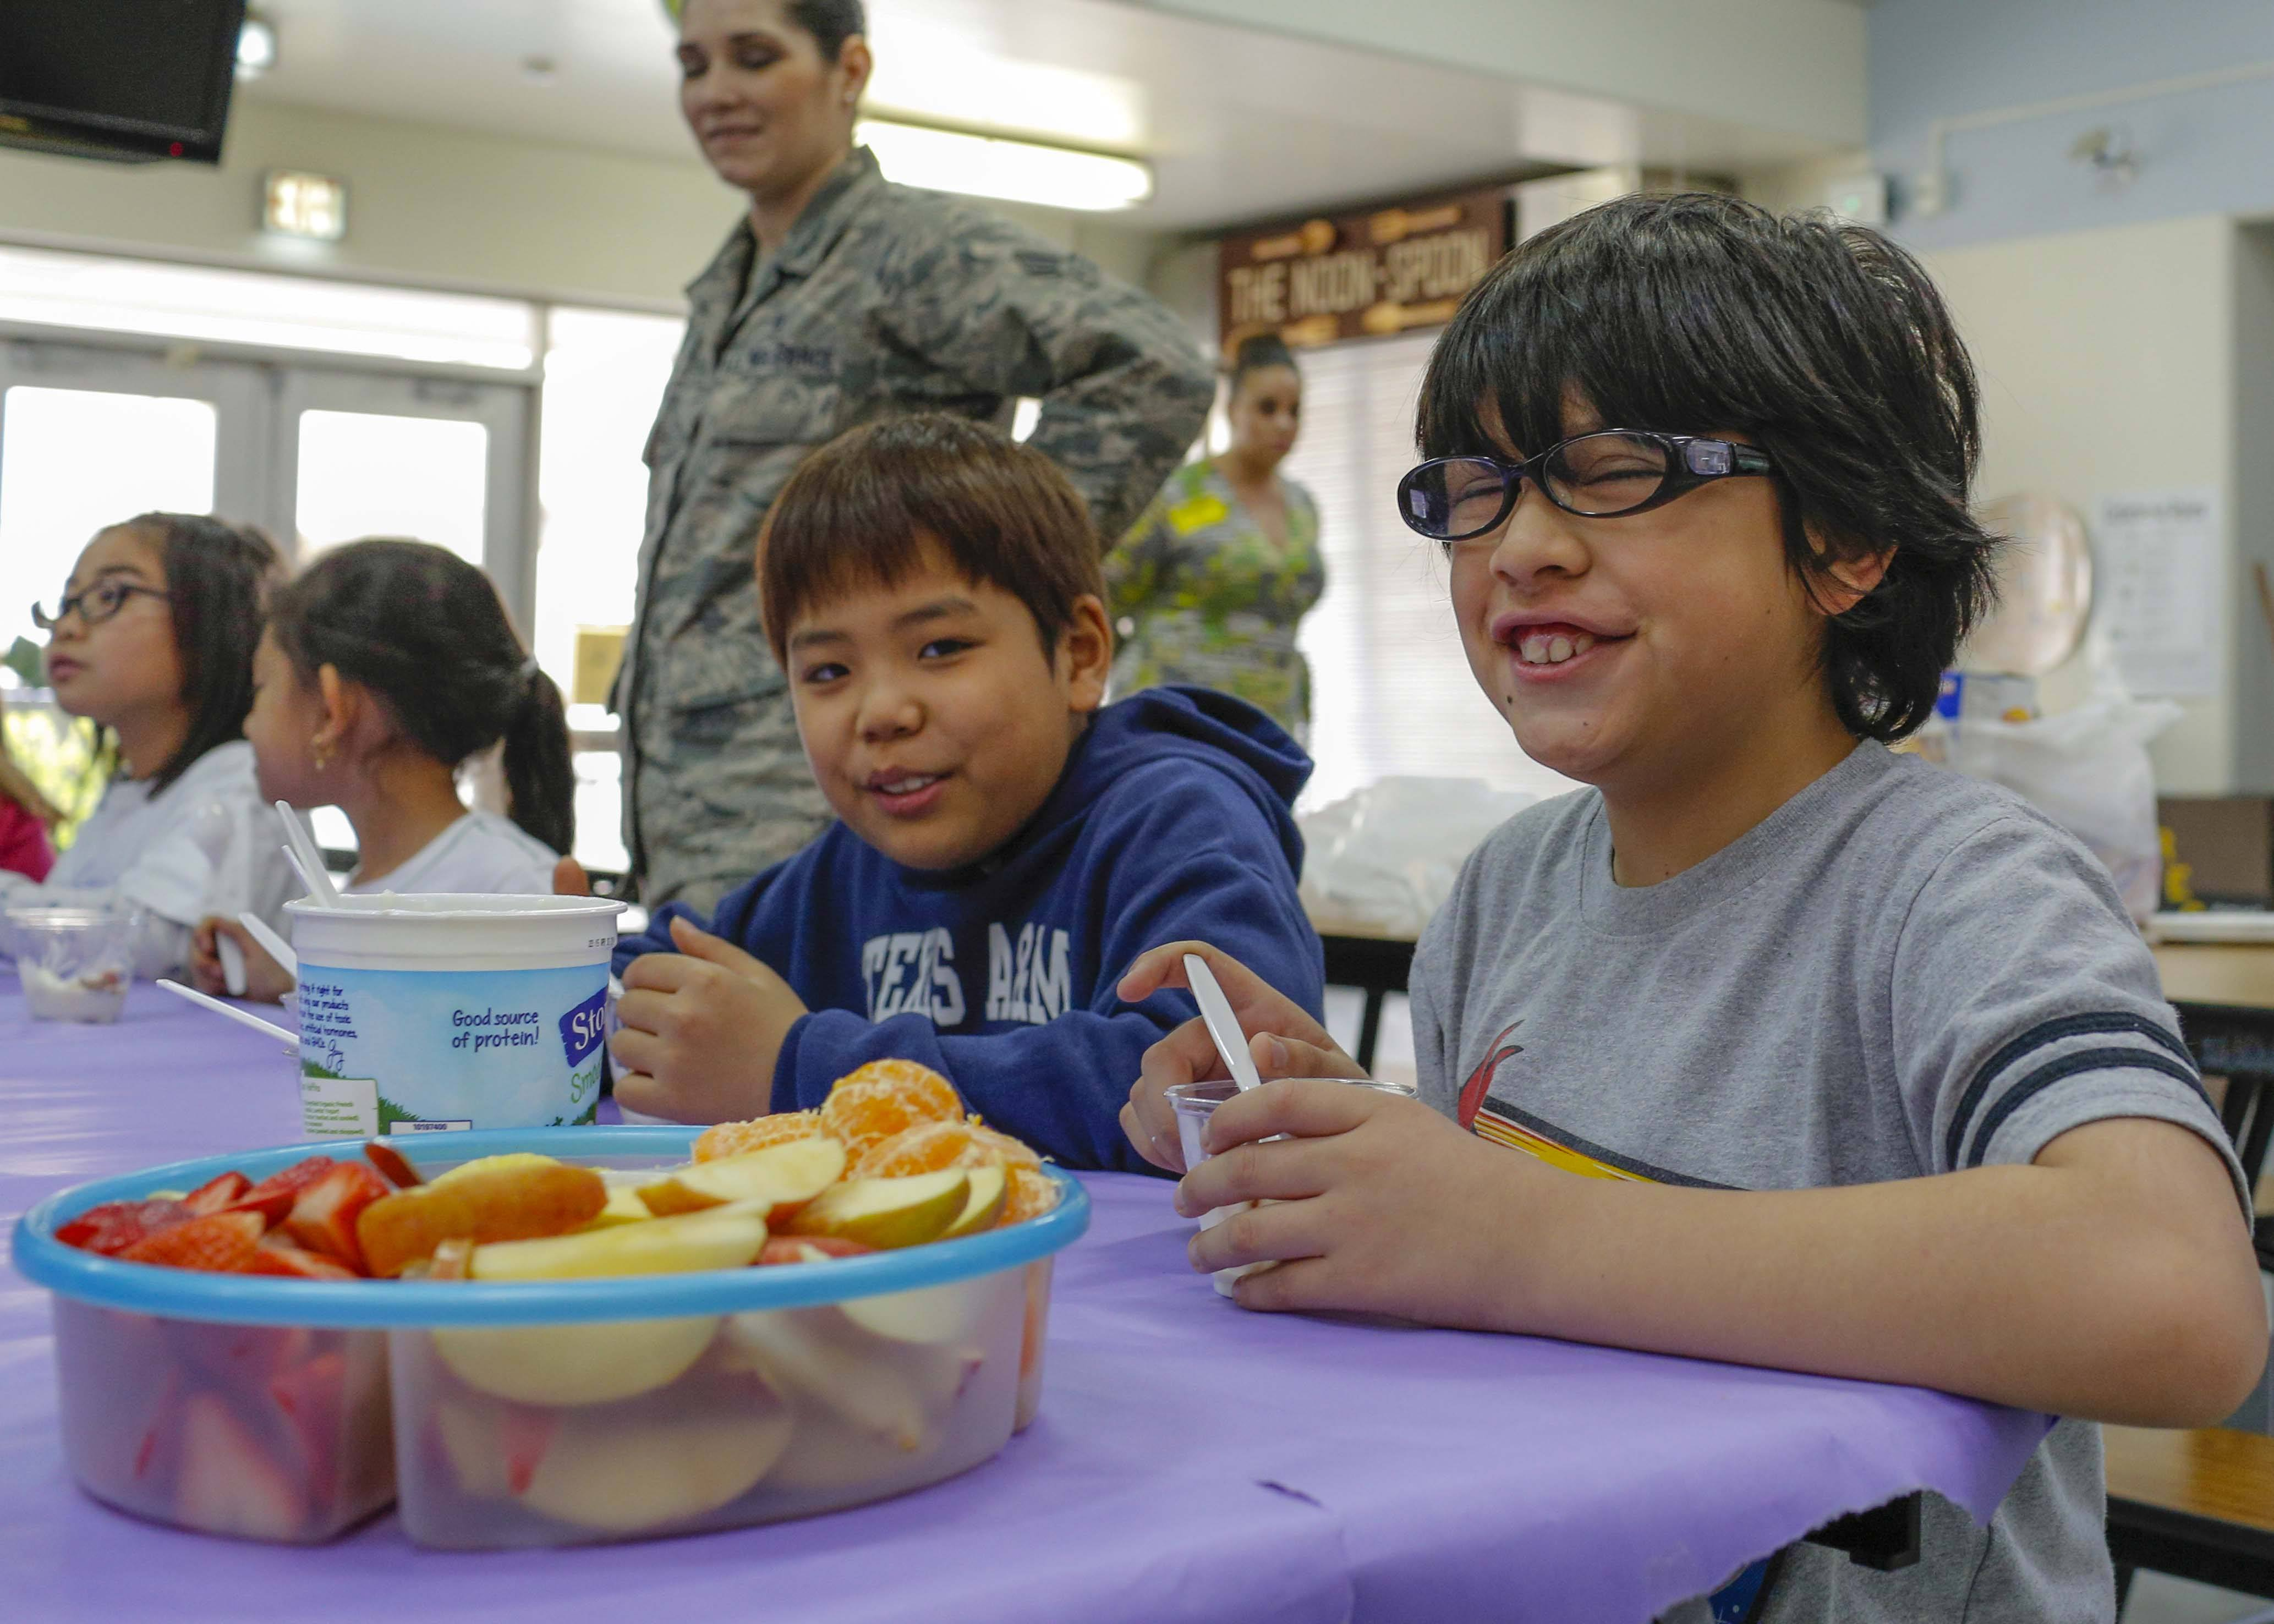 Learning-disability-is-the-causes-of-child-obesity